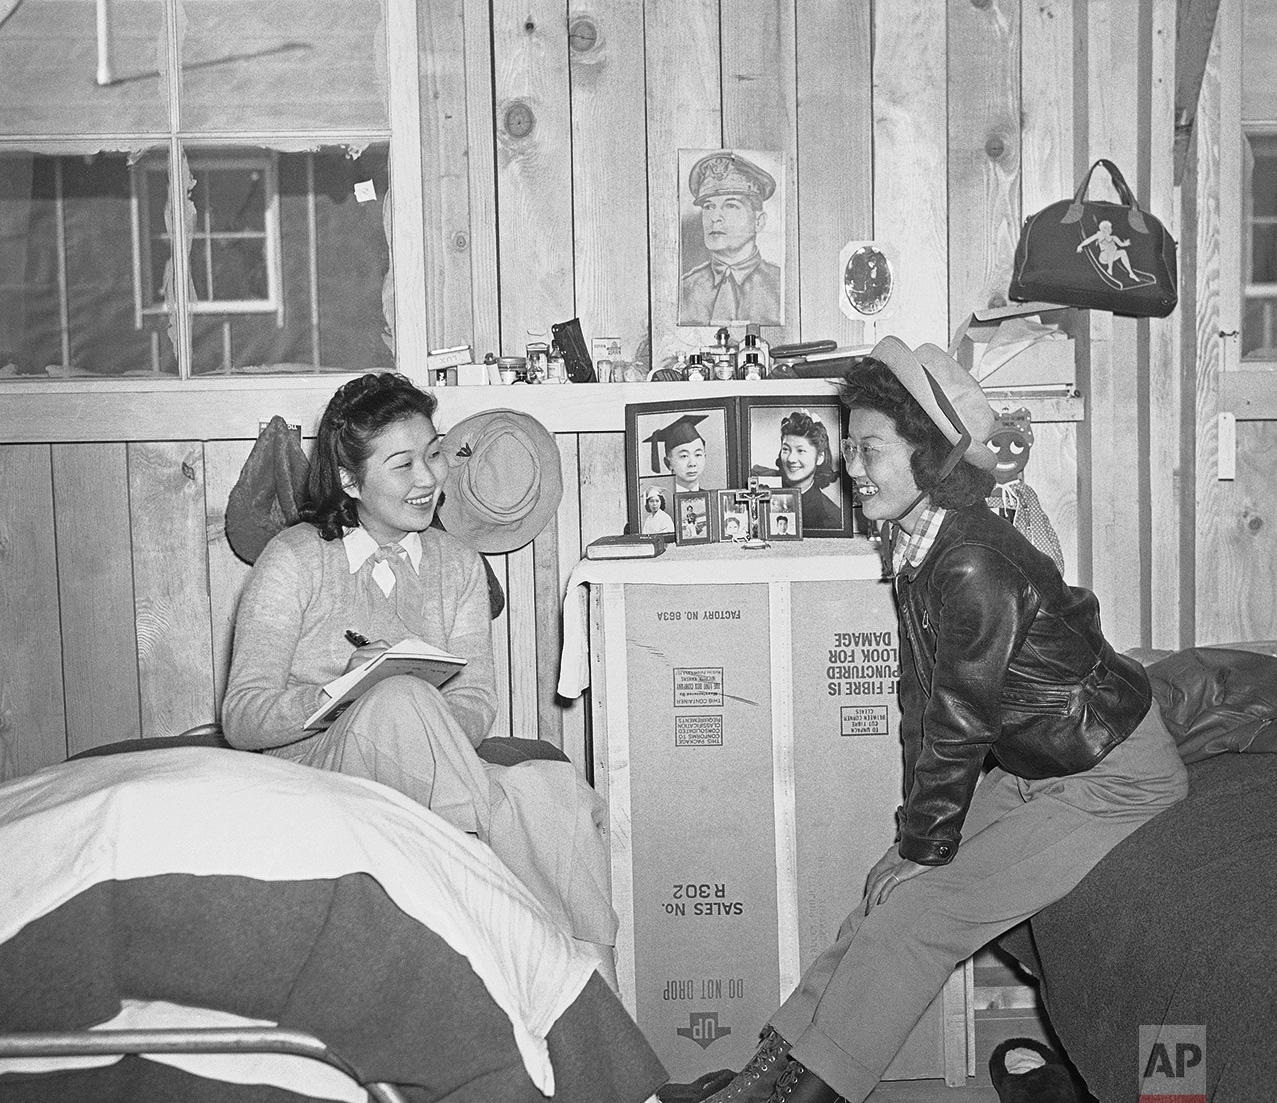 A picture of Gen. Douglas MacArthur, military nemesis of the Japanese forces, hung in a flace of honor, March 24, 1942 on the wall of the room of Gene Hashimoto (left) and Mary Wada was at the reception center established at Manzanar in the Owens Valley for Japanese evacuated from Los Angeles. Miss Hashimoto wrote friends at home of the new life at the hastily constructed community. (AP Photo)